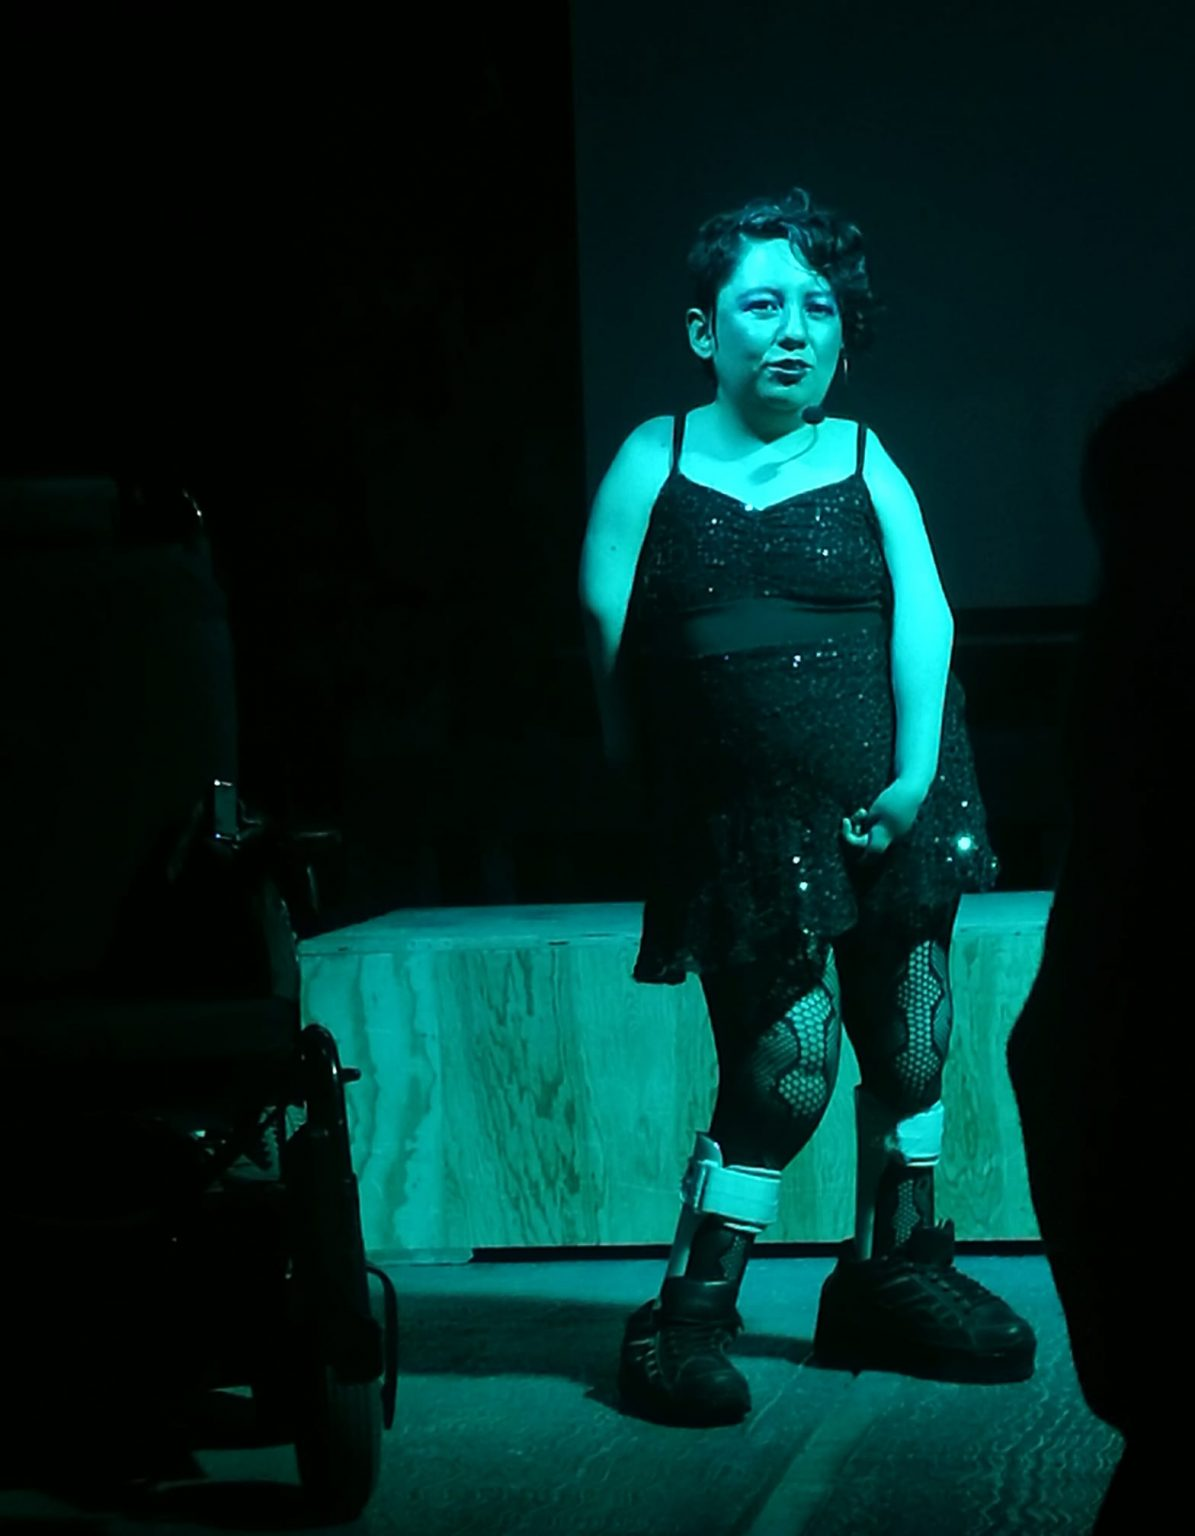 Artist Bubulina stands on a blue lit stage in front of a wooden box. They are wearing a sparkly black spaghetti strap dress with black fishnet tights, grey leg braces and black sneakers. Bubulina's short curly hair is combed over to the right and a small black microphone is looped around their right ear.